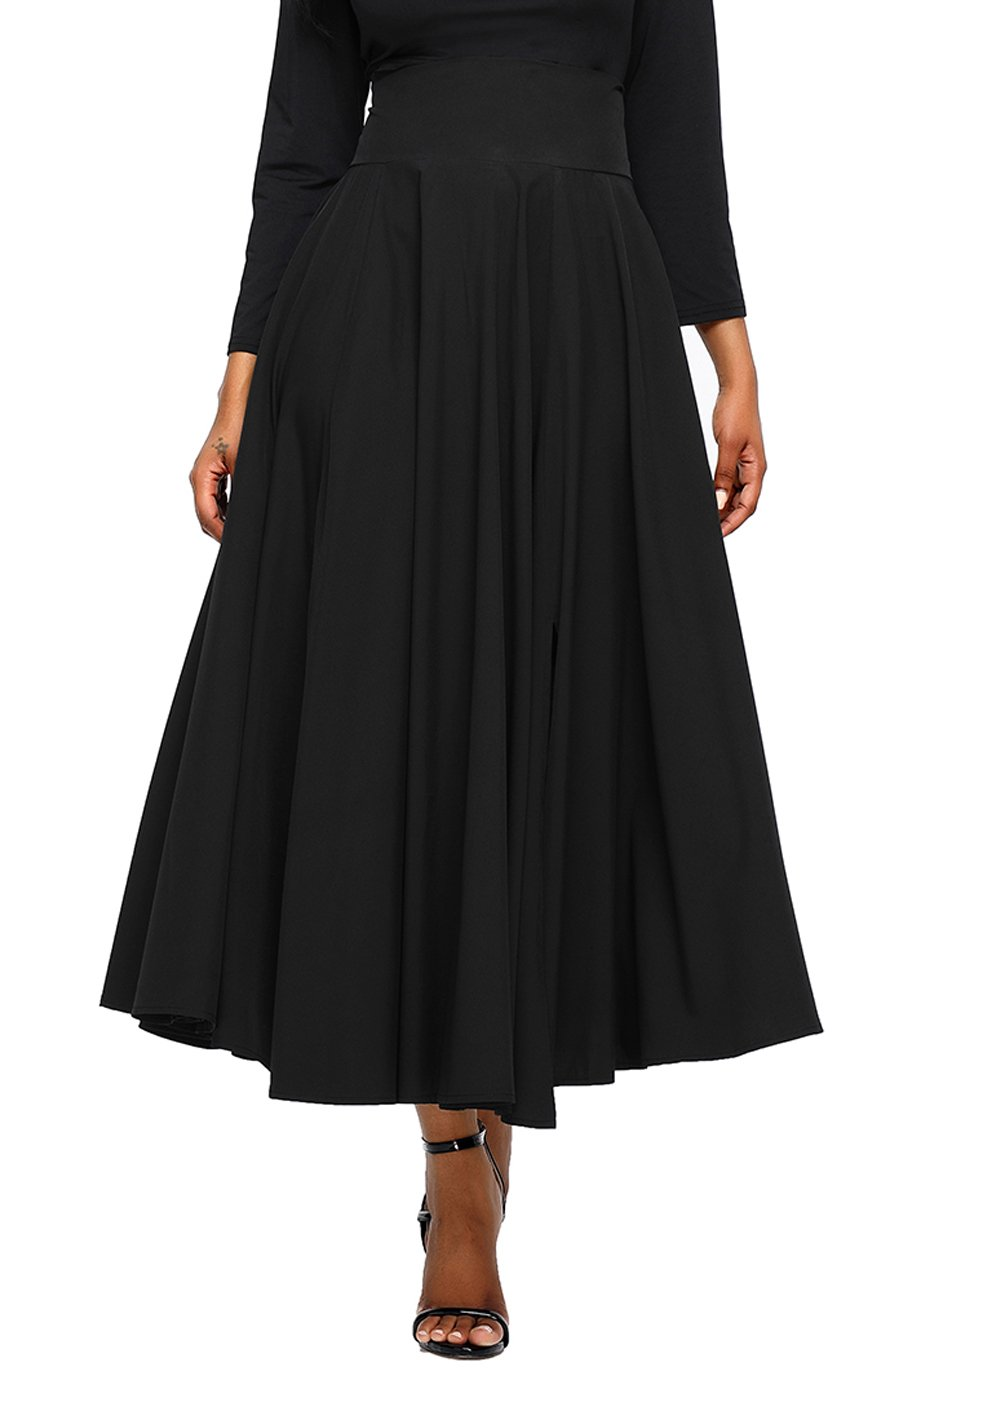 Asvivid Women's Solid High Waisted Full Midi Skirt Pocket Long Skirt Dresses Medium Black